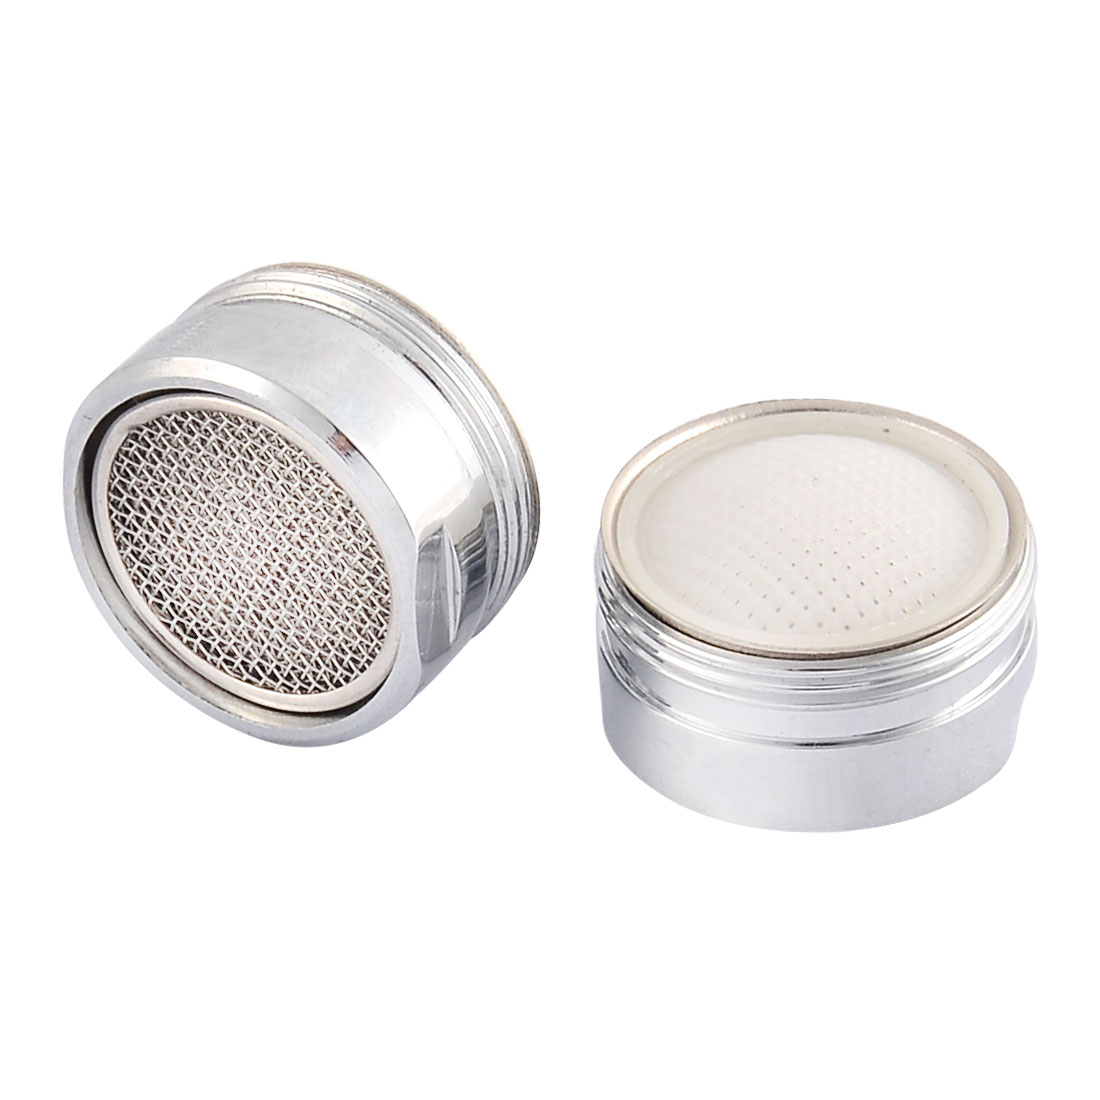 Household Kitchen Metal Faucet Filter Net Nozzle 22mm Male Thread 2 Pcs